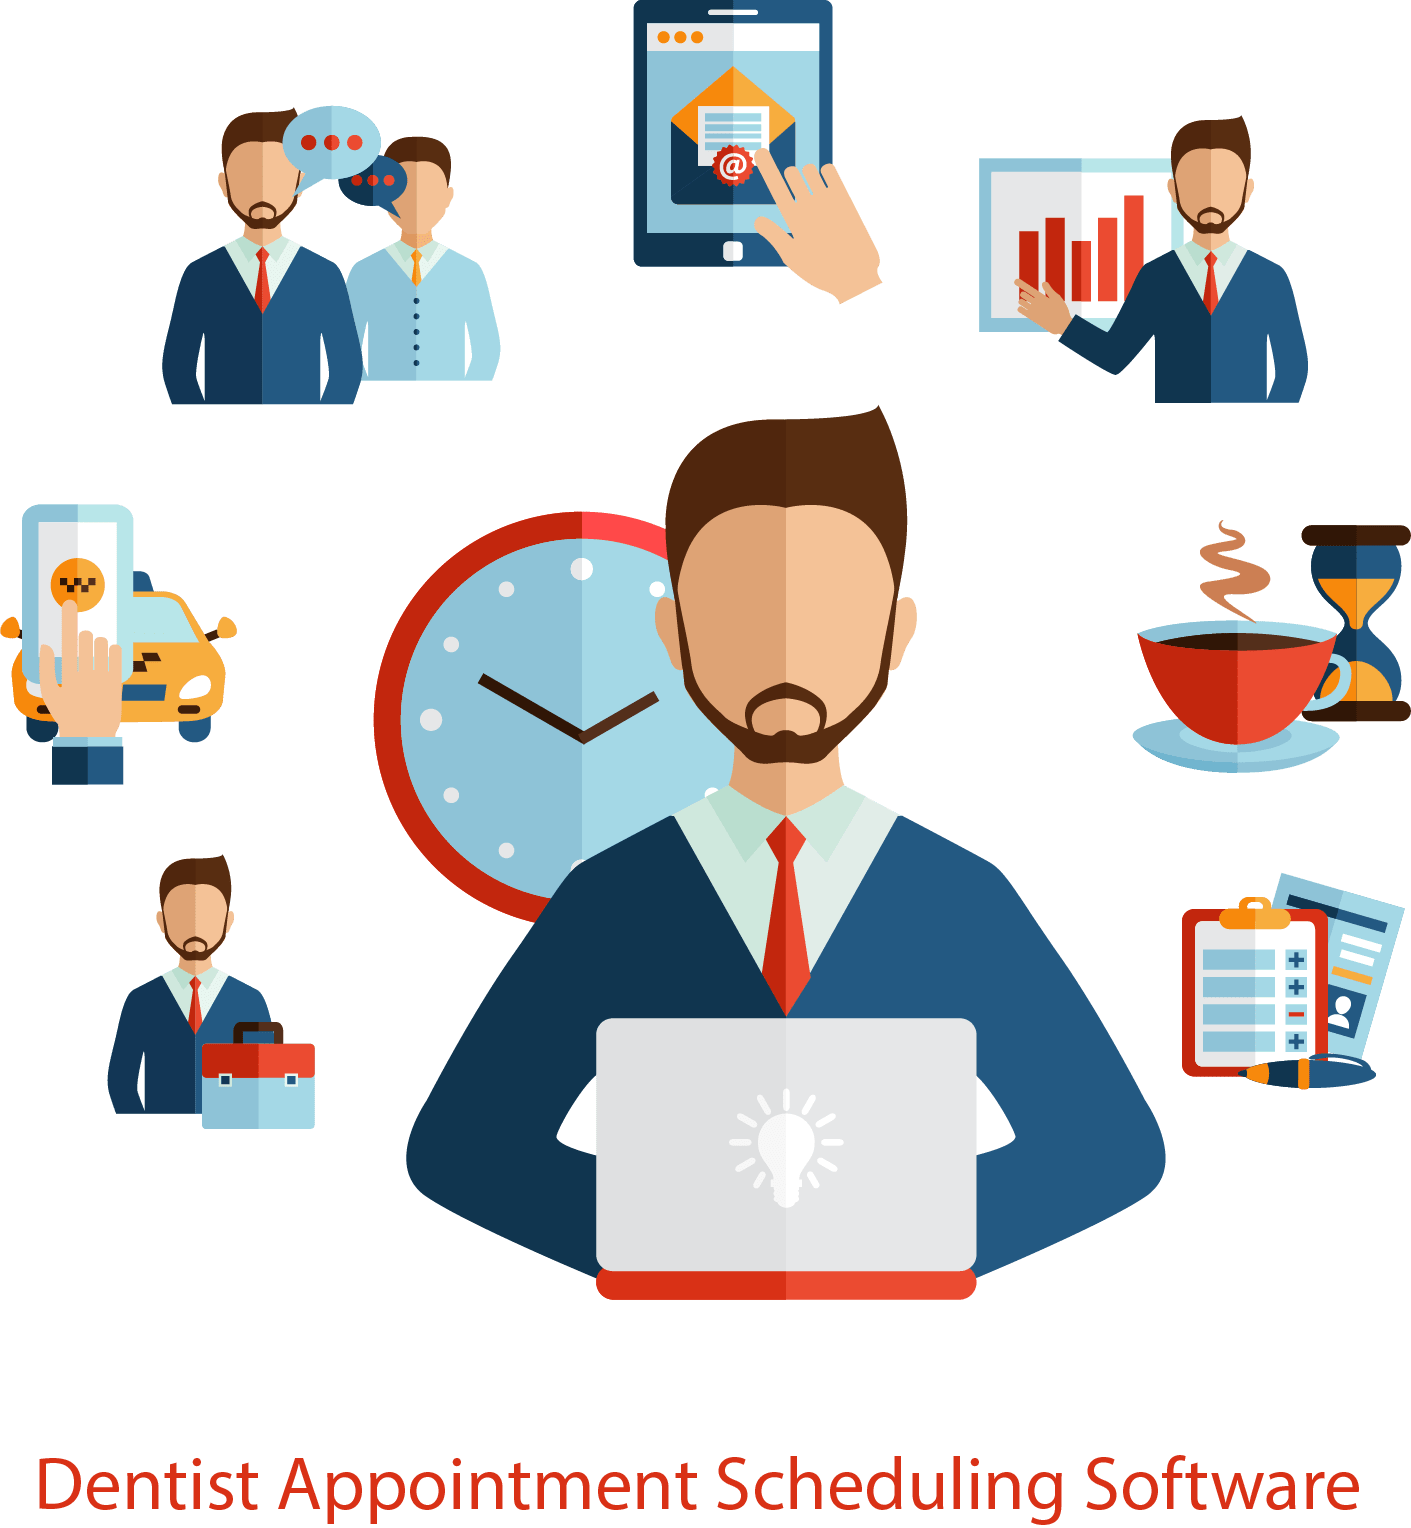 Dentist Appointment Scheduling Software